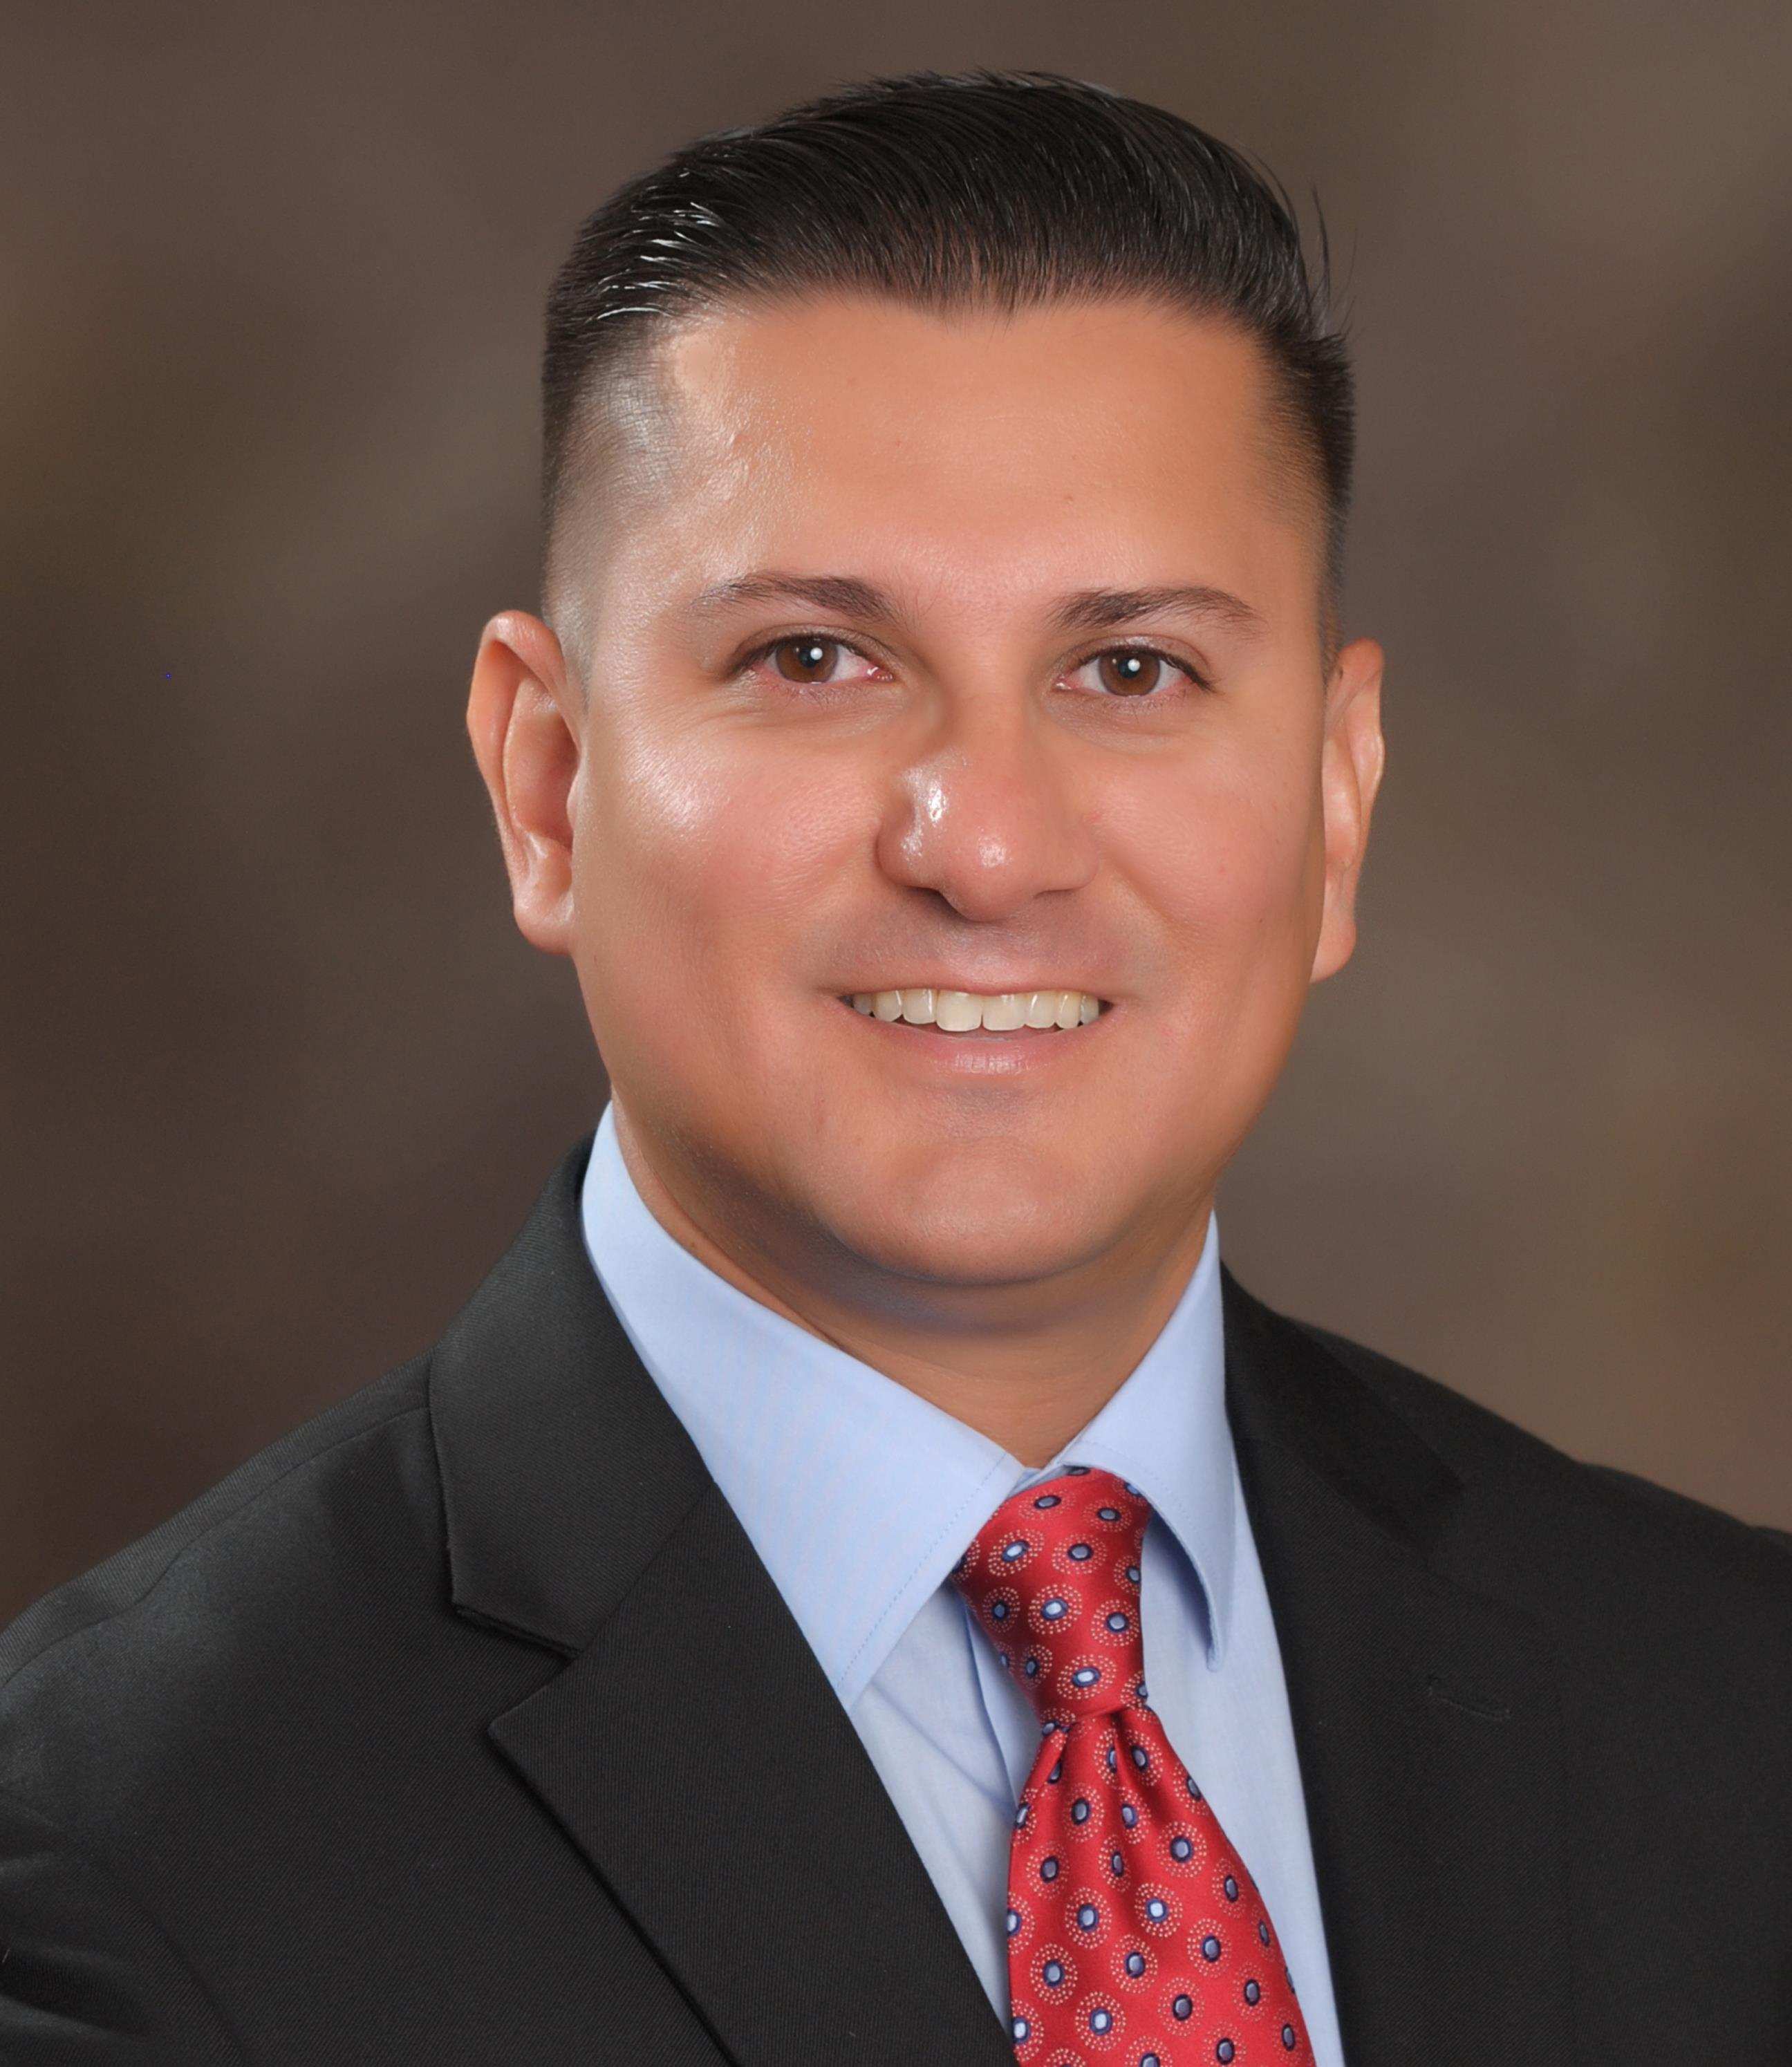 Roger Roger is a licensed real estate agent in Merced CA